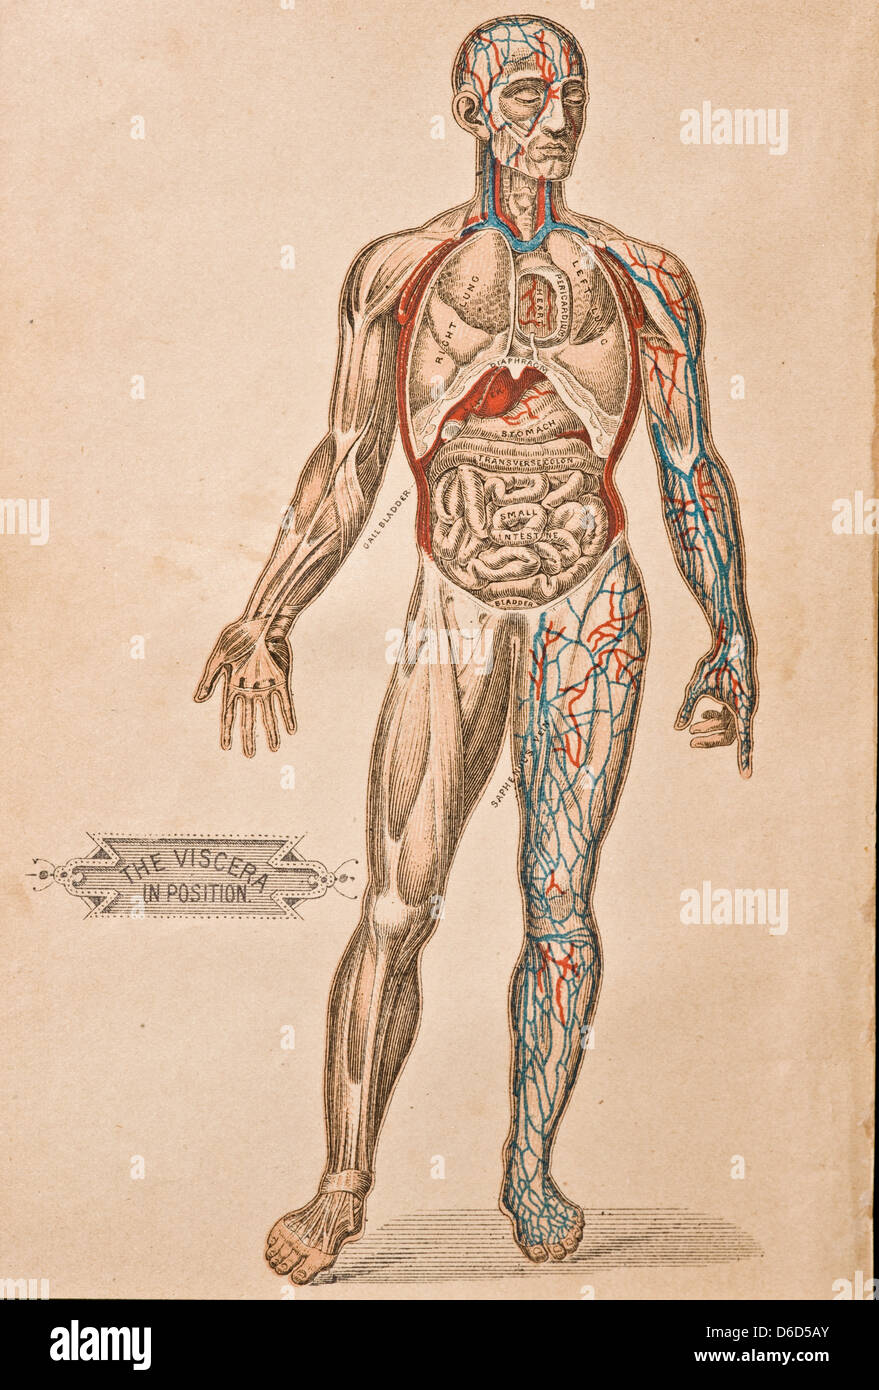 An antique illustration of the organs and arteries in the human body. - Stock Image